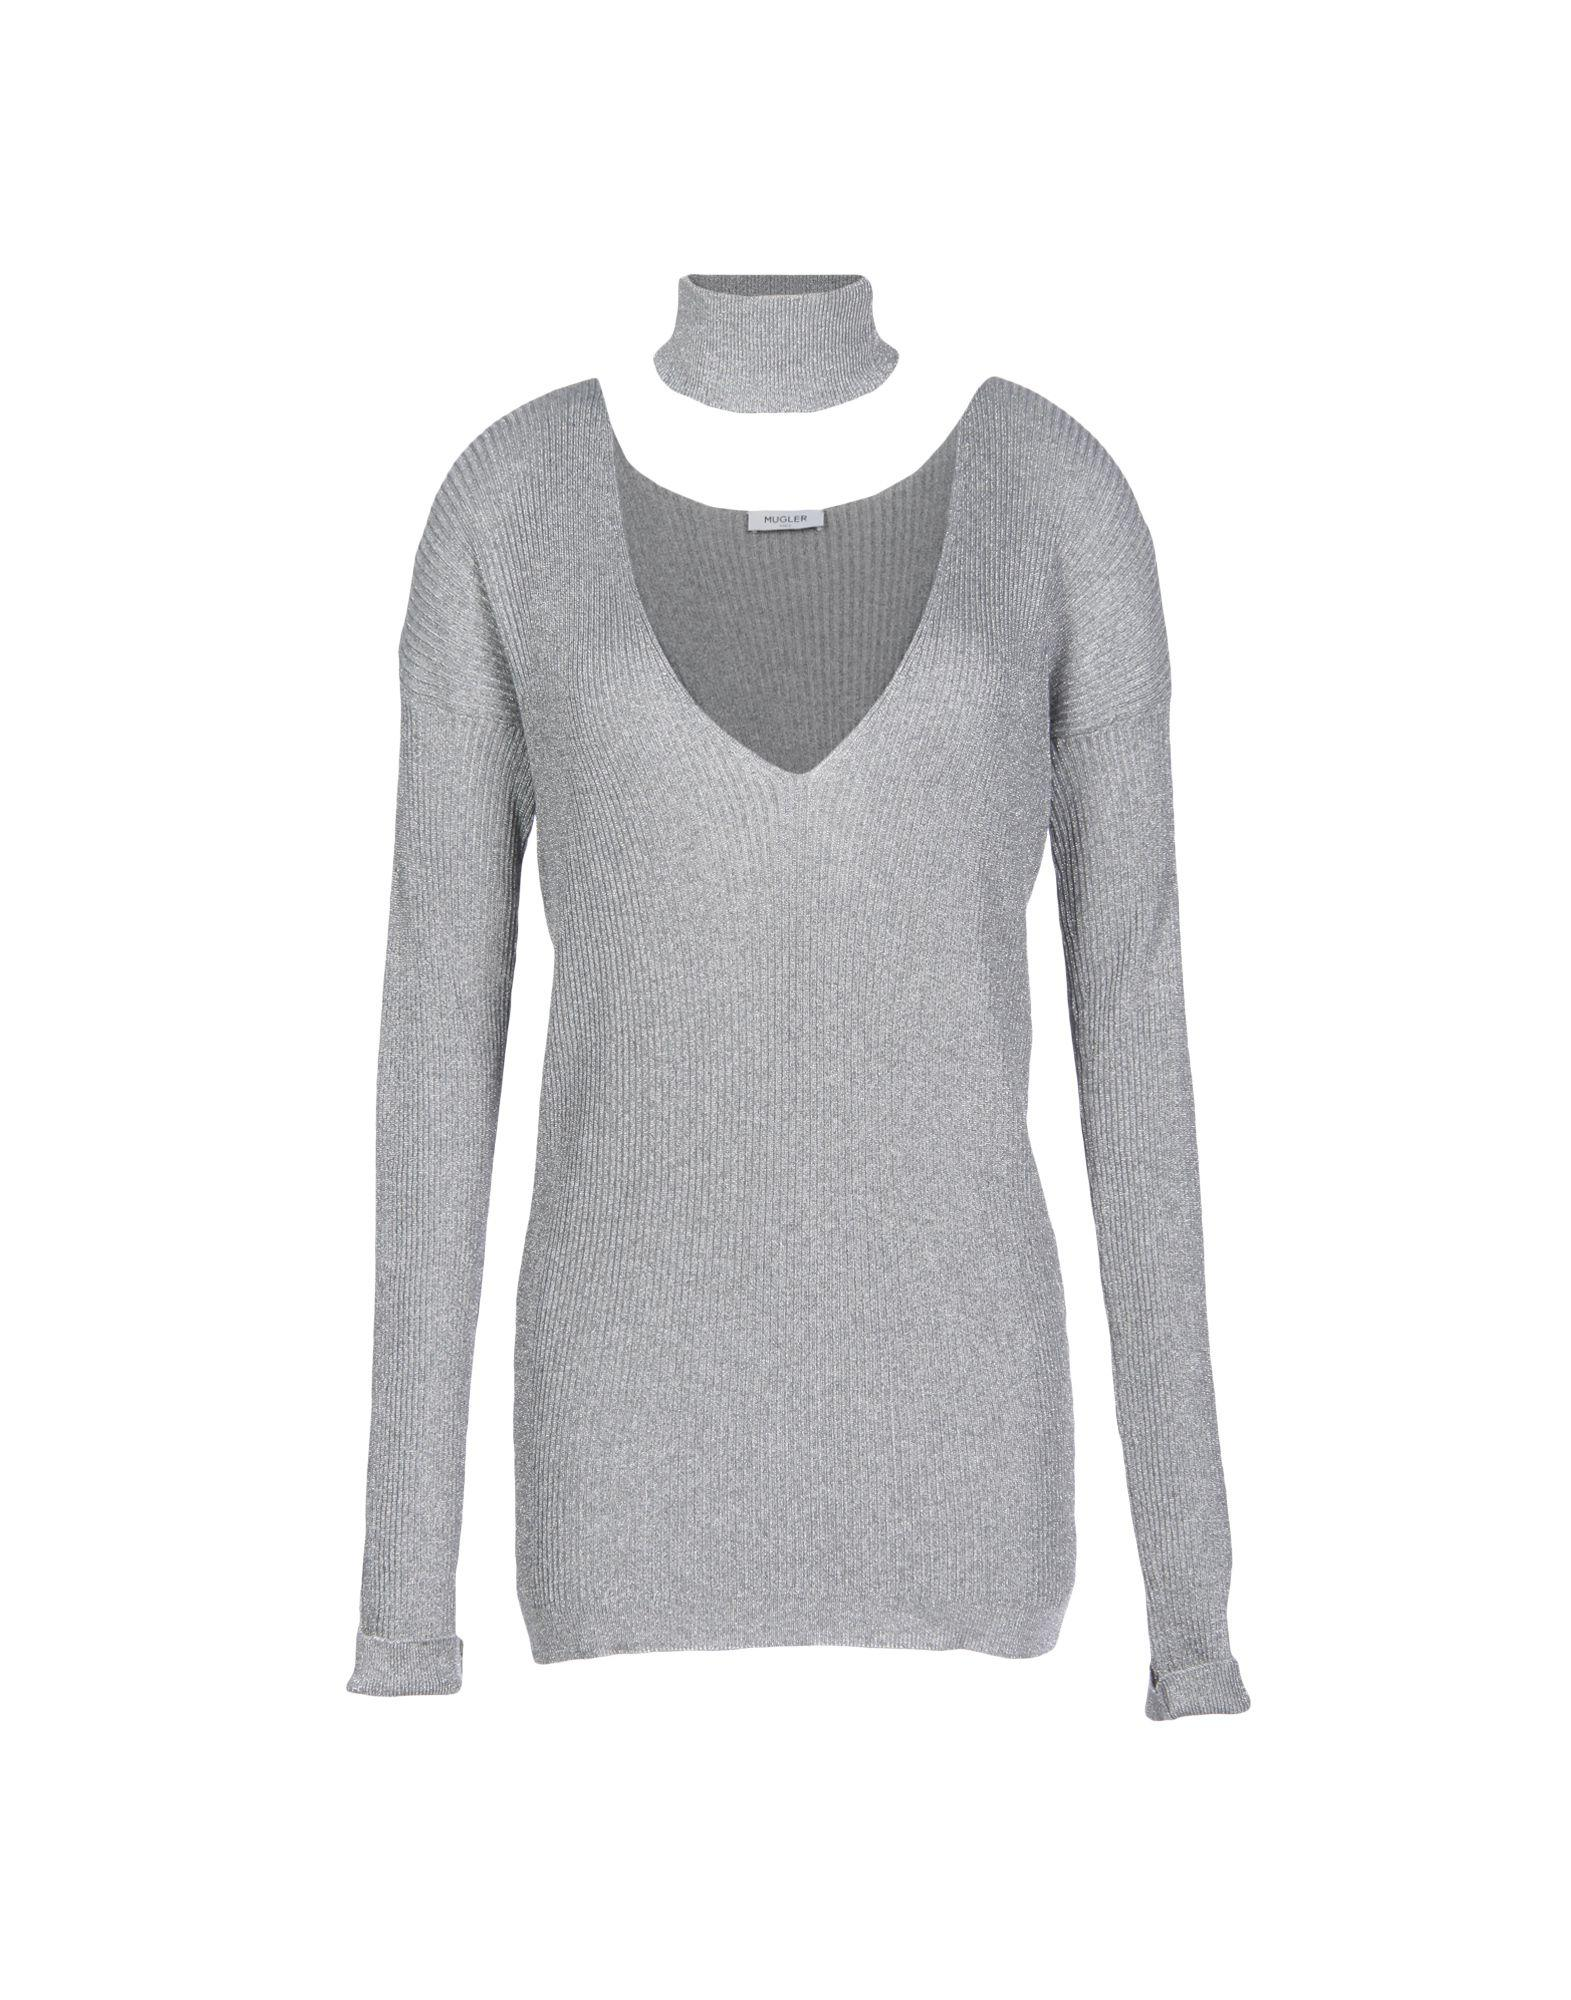 Clearance Outlet Locations Discount Cheap Online Mugler Woman Metallic Ribbed Stretch-knit Turtleneck Sweater Silver Size XL MUGLER Buy Cheap Enjoy Clearance From China i2mmJQ